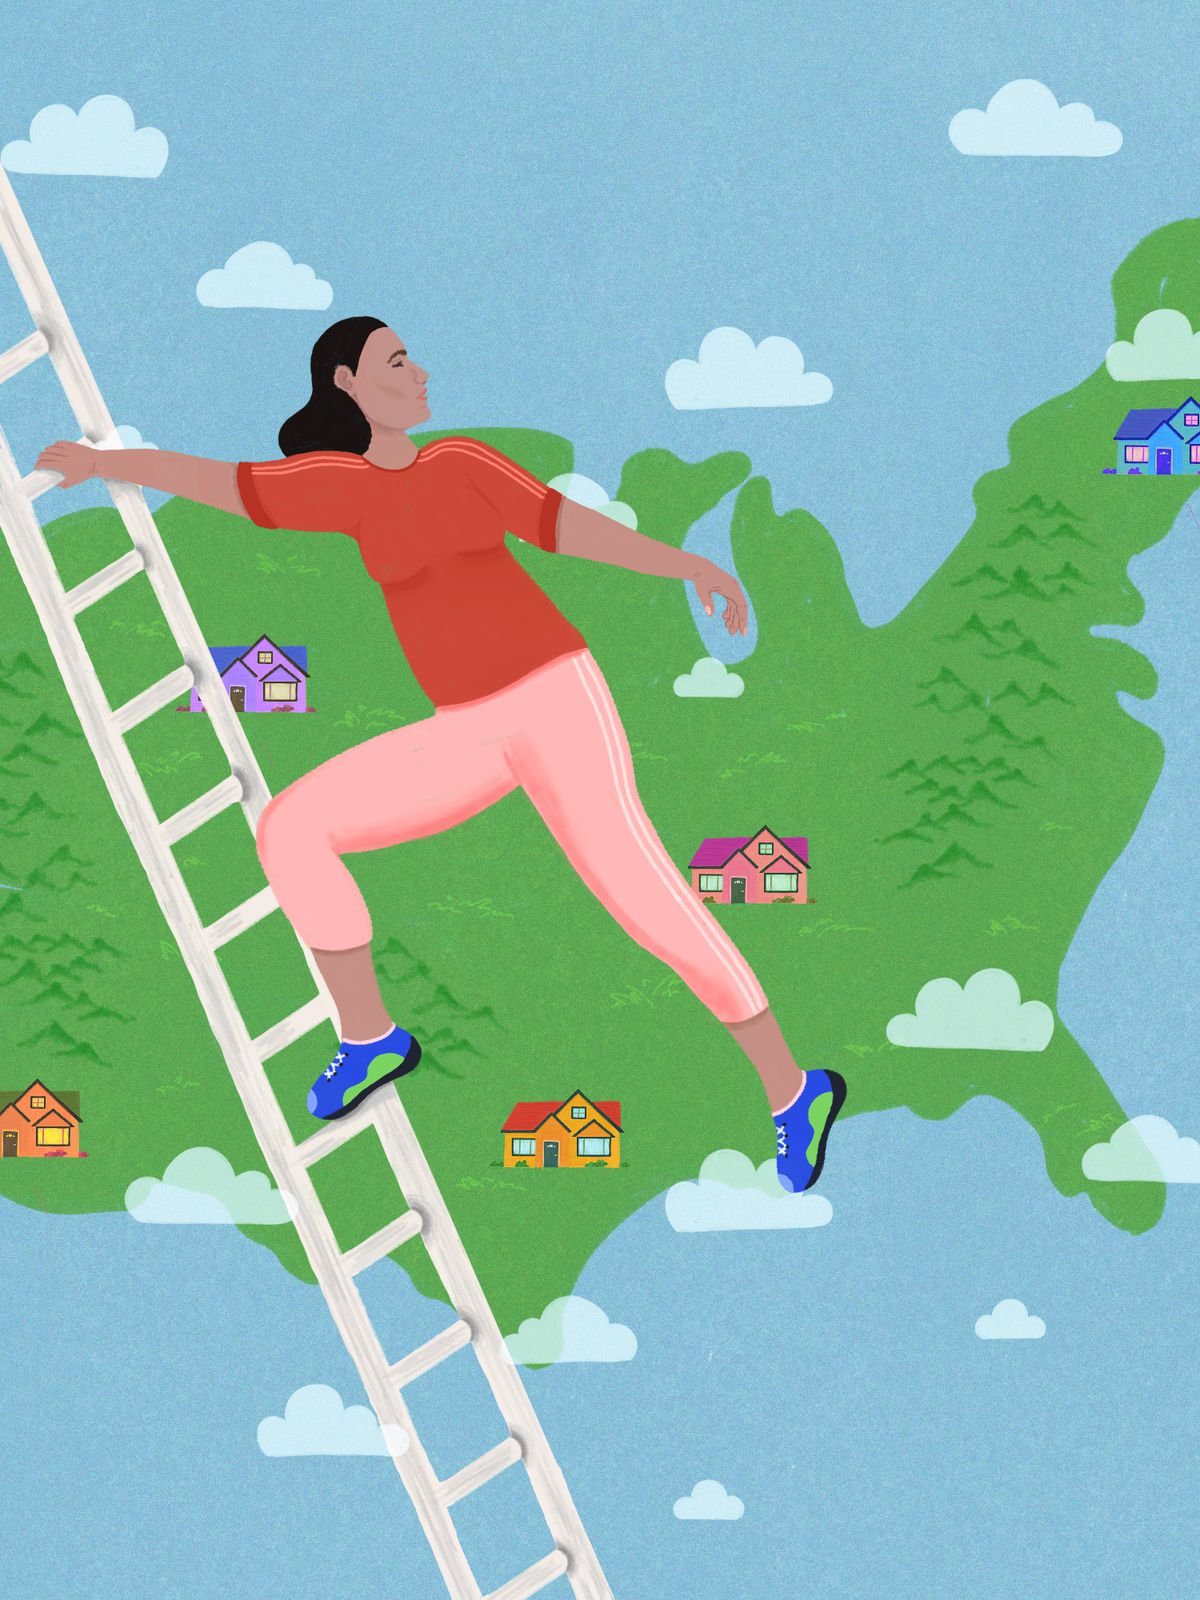 A girl climbs a ladder, with a map of the United States dotted with houses in the background